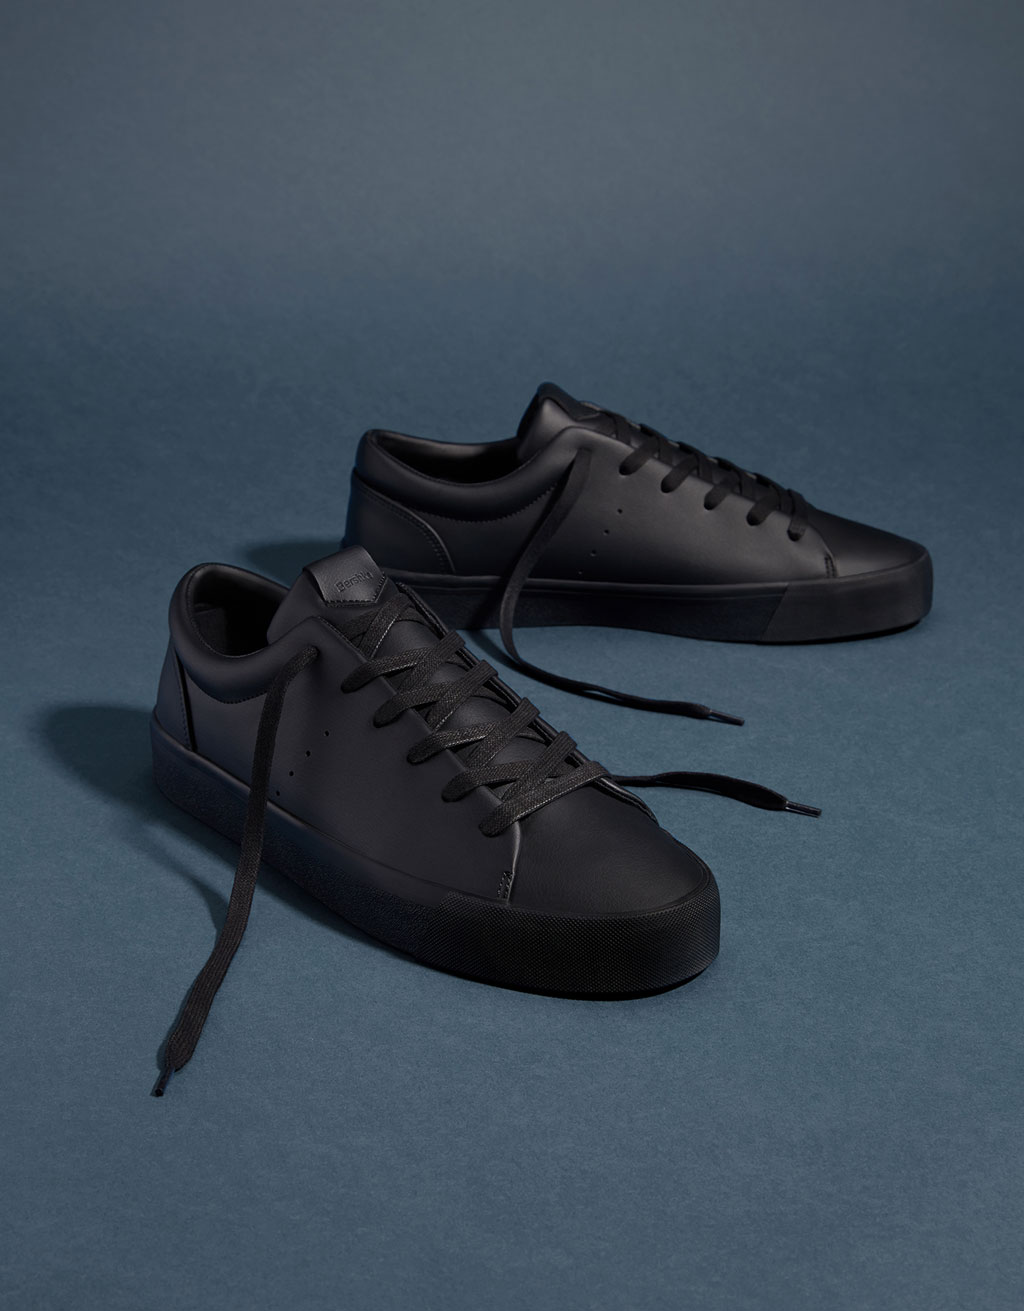 Men's monochrome sneakers